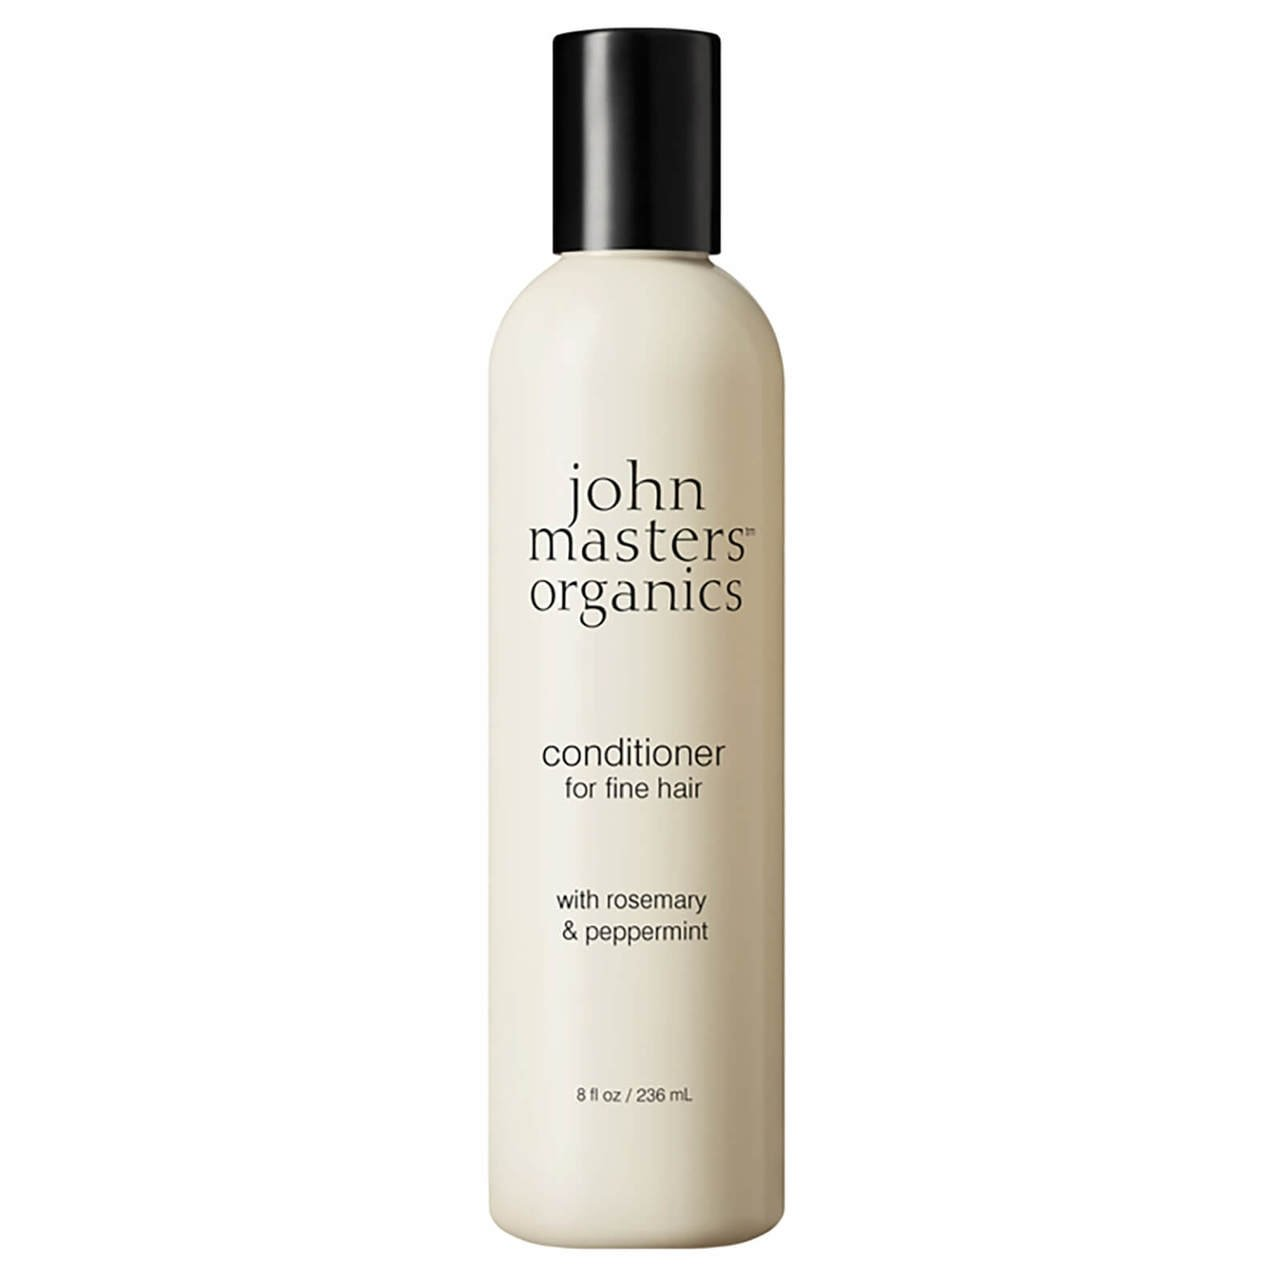 Rosemary & Peppermint Conditioner for Fine Hair by John Masters Organic